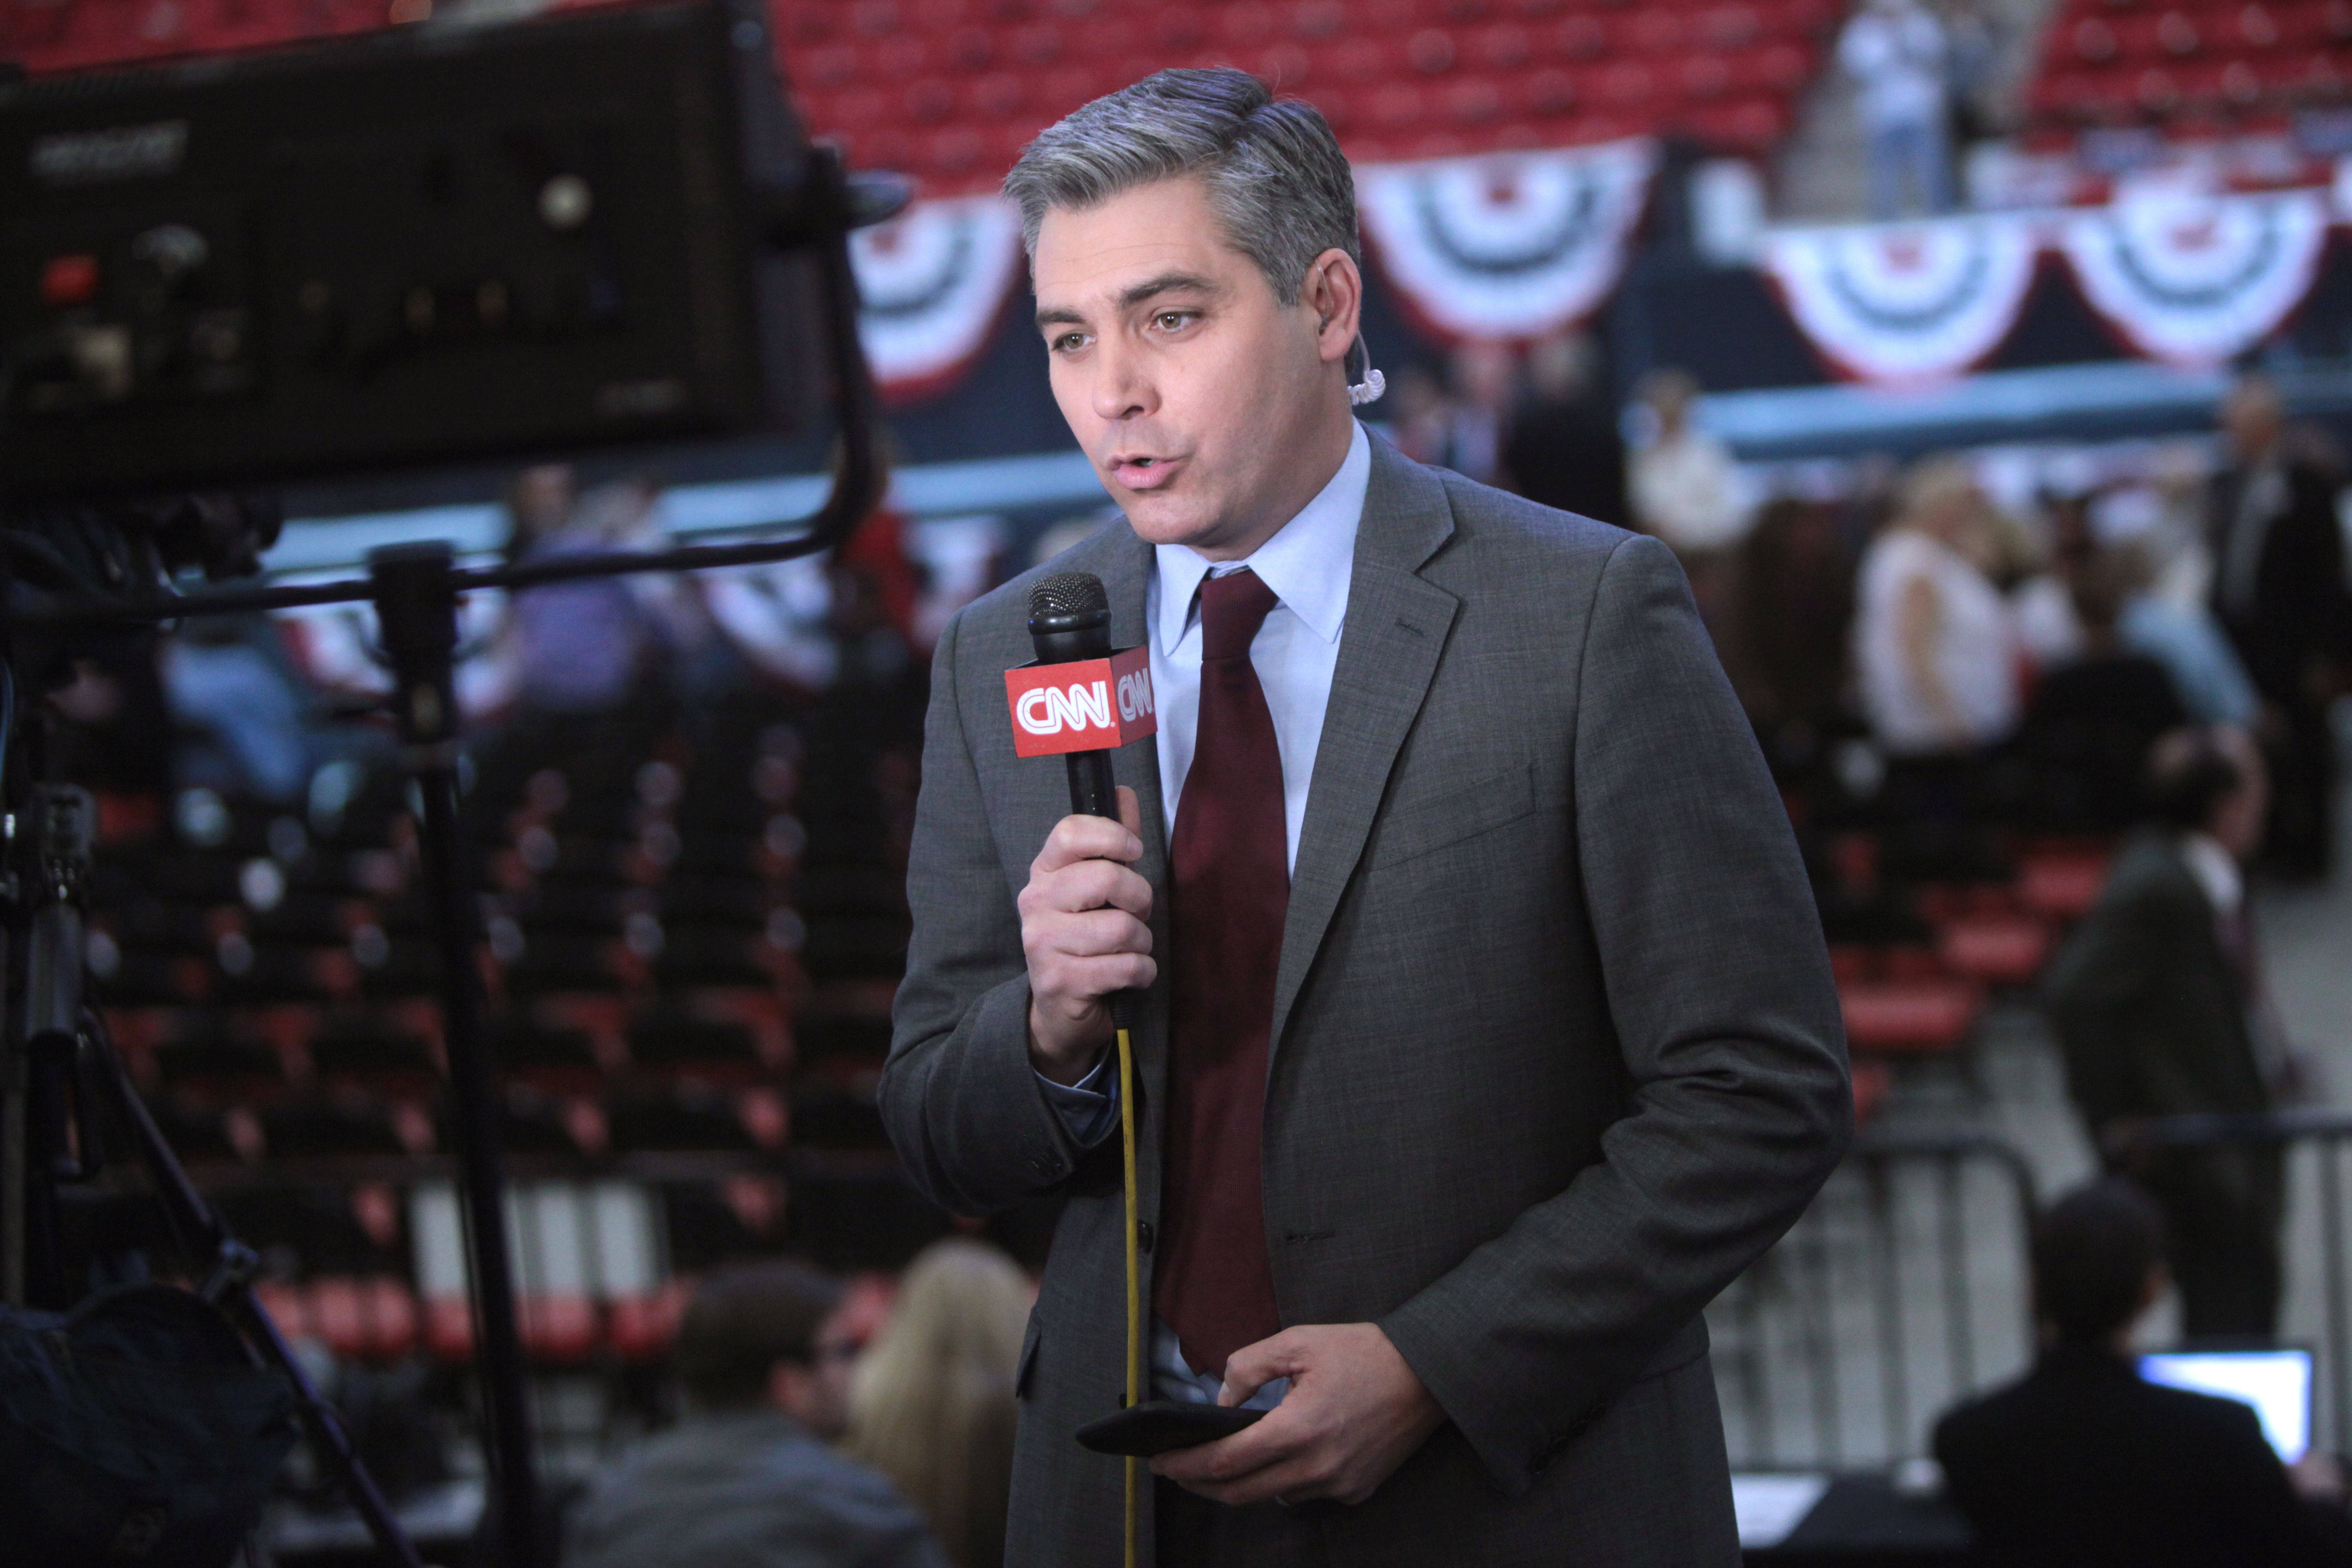 Judge orders Acosta's White House credentials temporarily restored